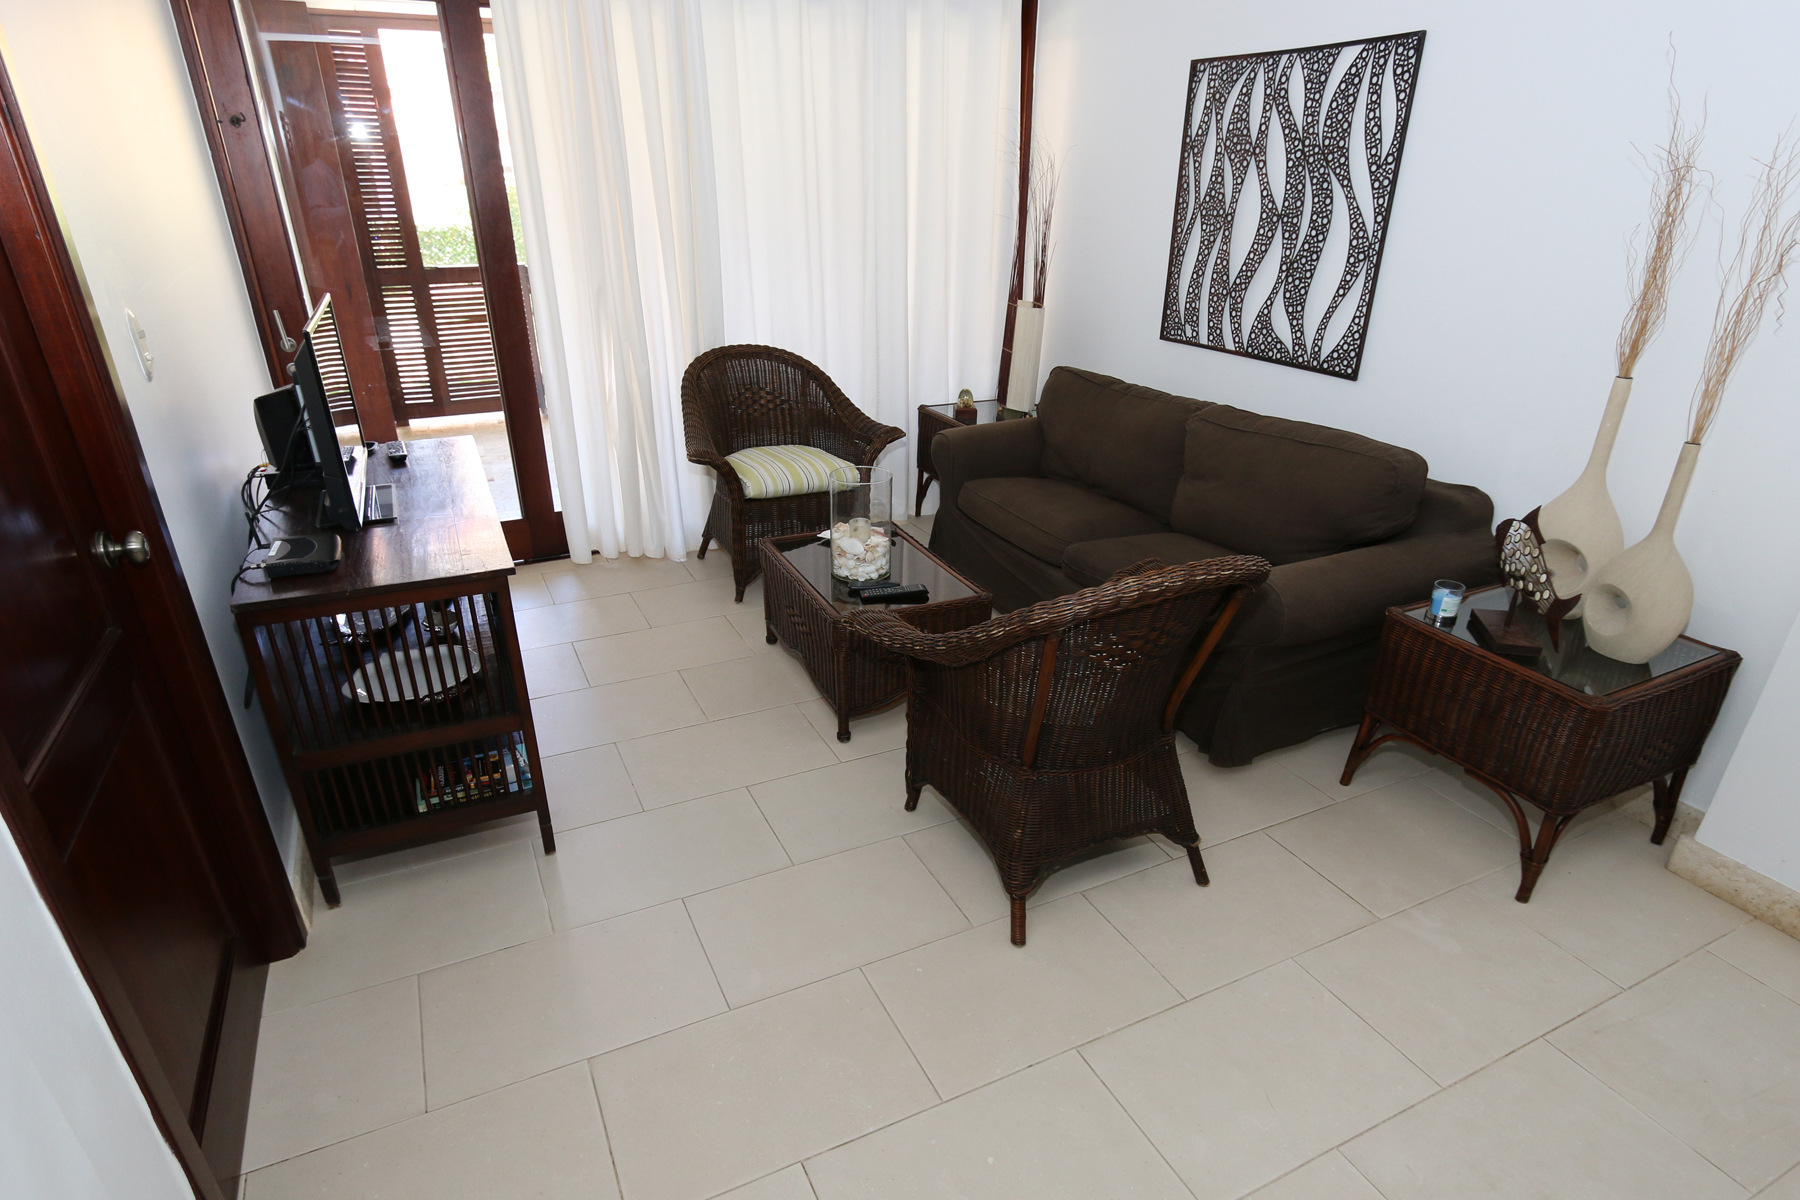 Condominium for Rent at Pelican Beach Condo RENTAL Pelican Beach Condo 1-3 Cabarete, Puerto Plata, 57000 Dominican Republic